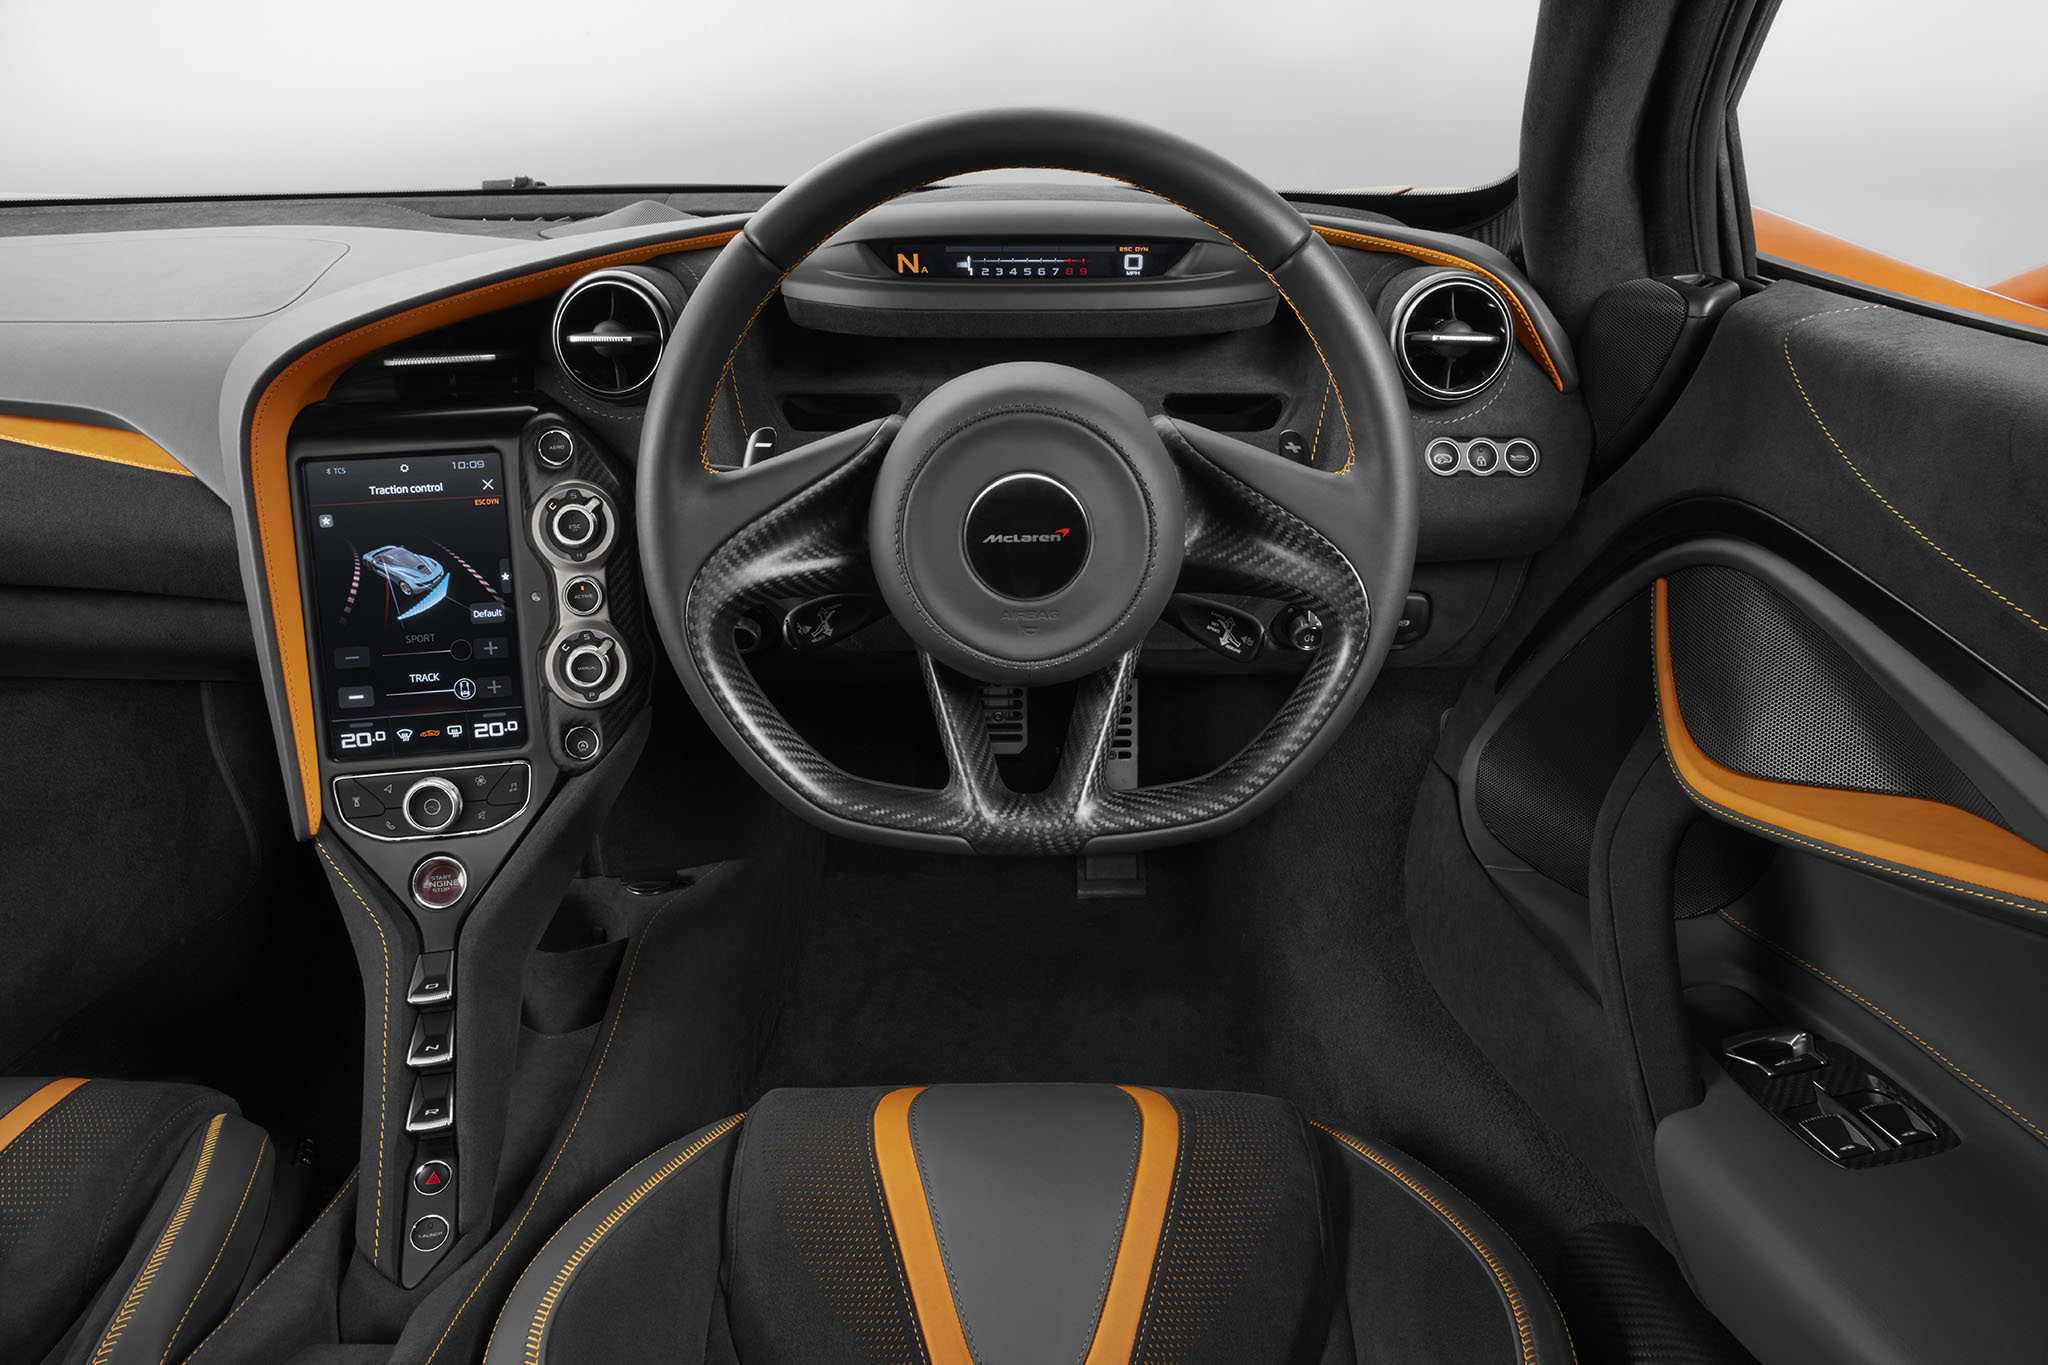 2018 McLaren 720S Interior POV Screen Down